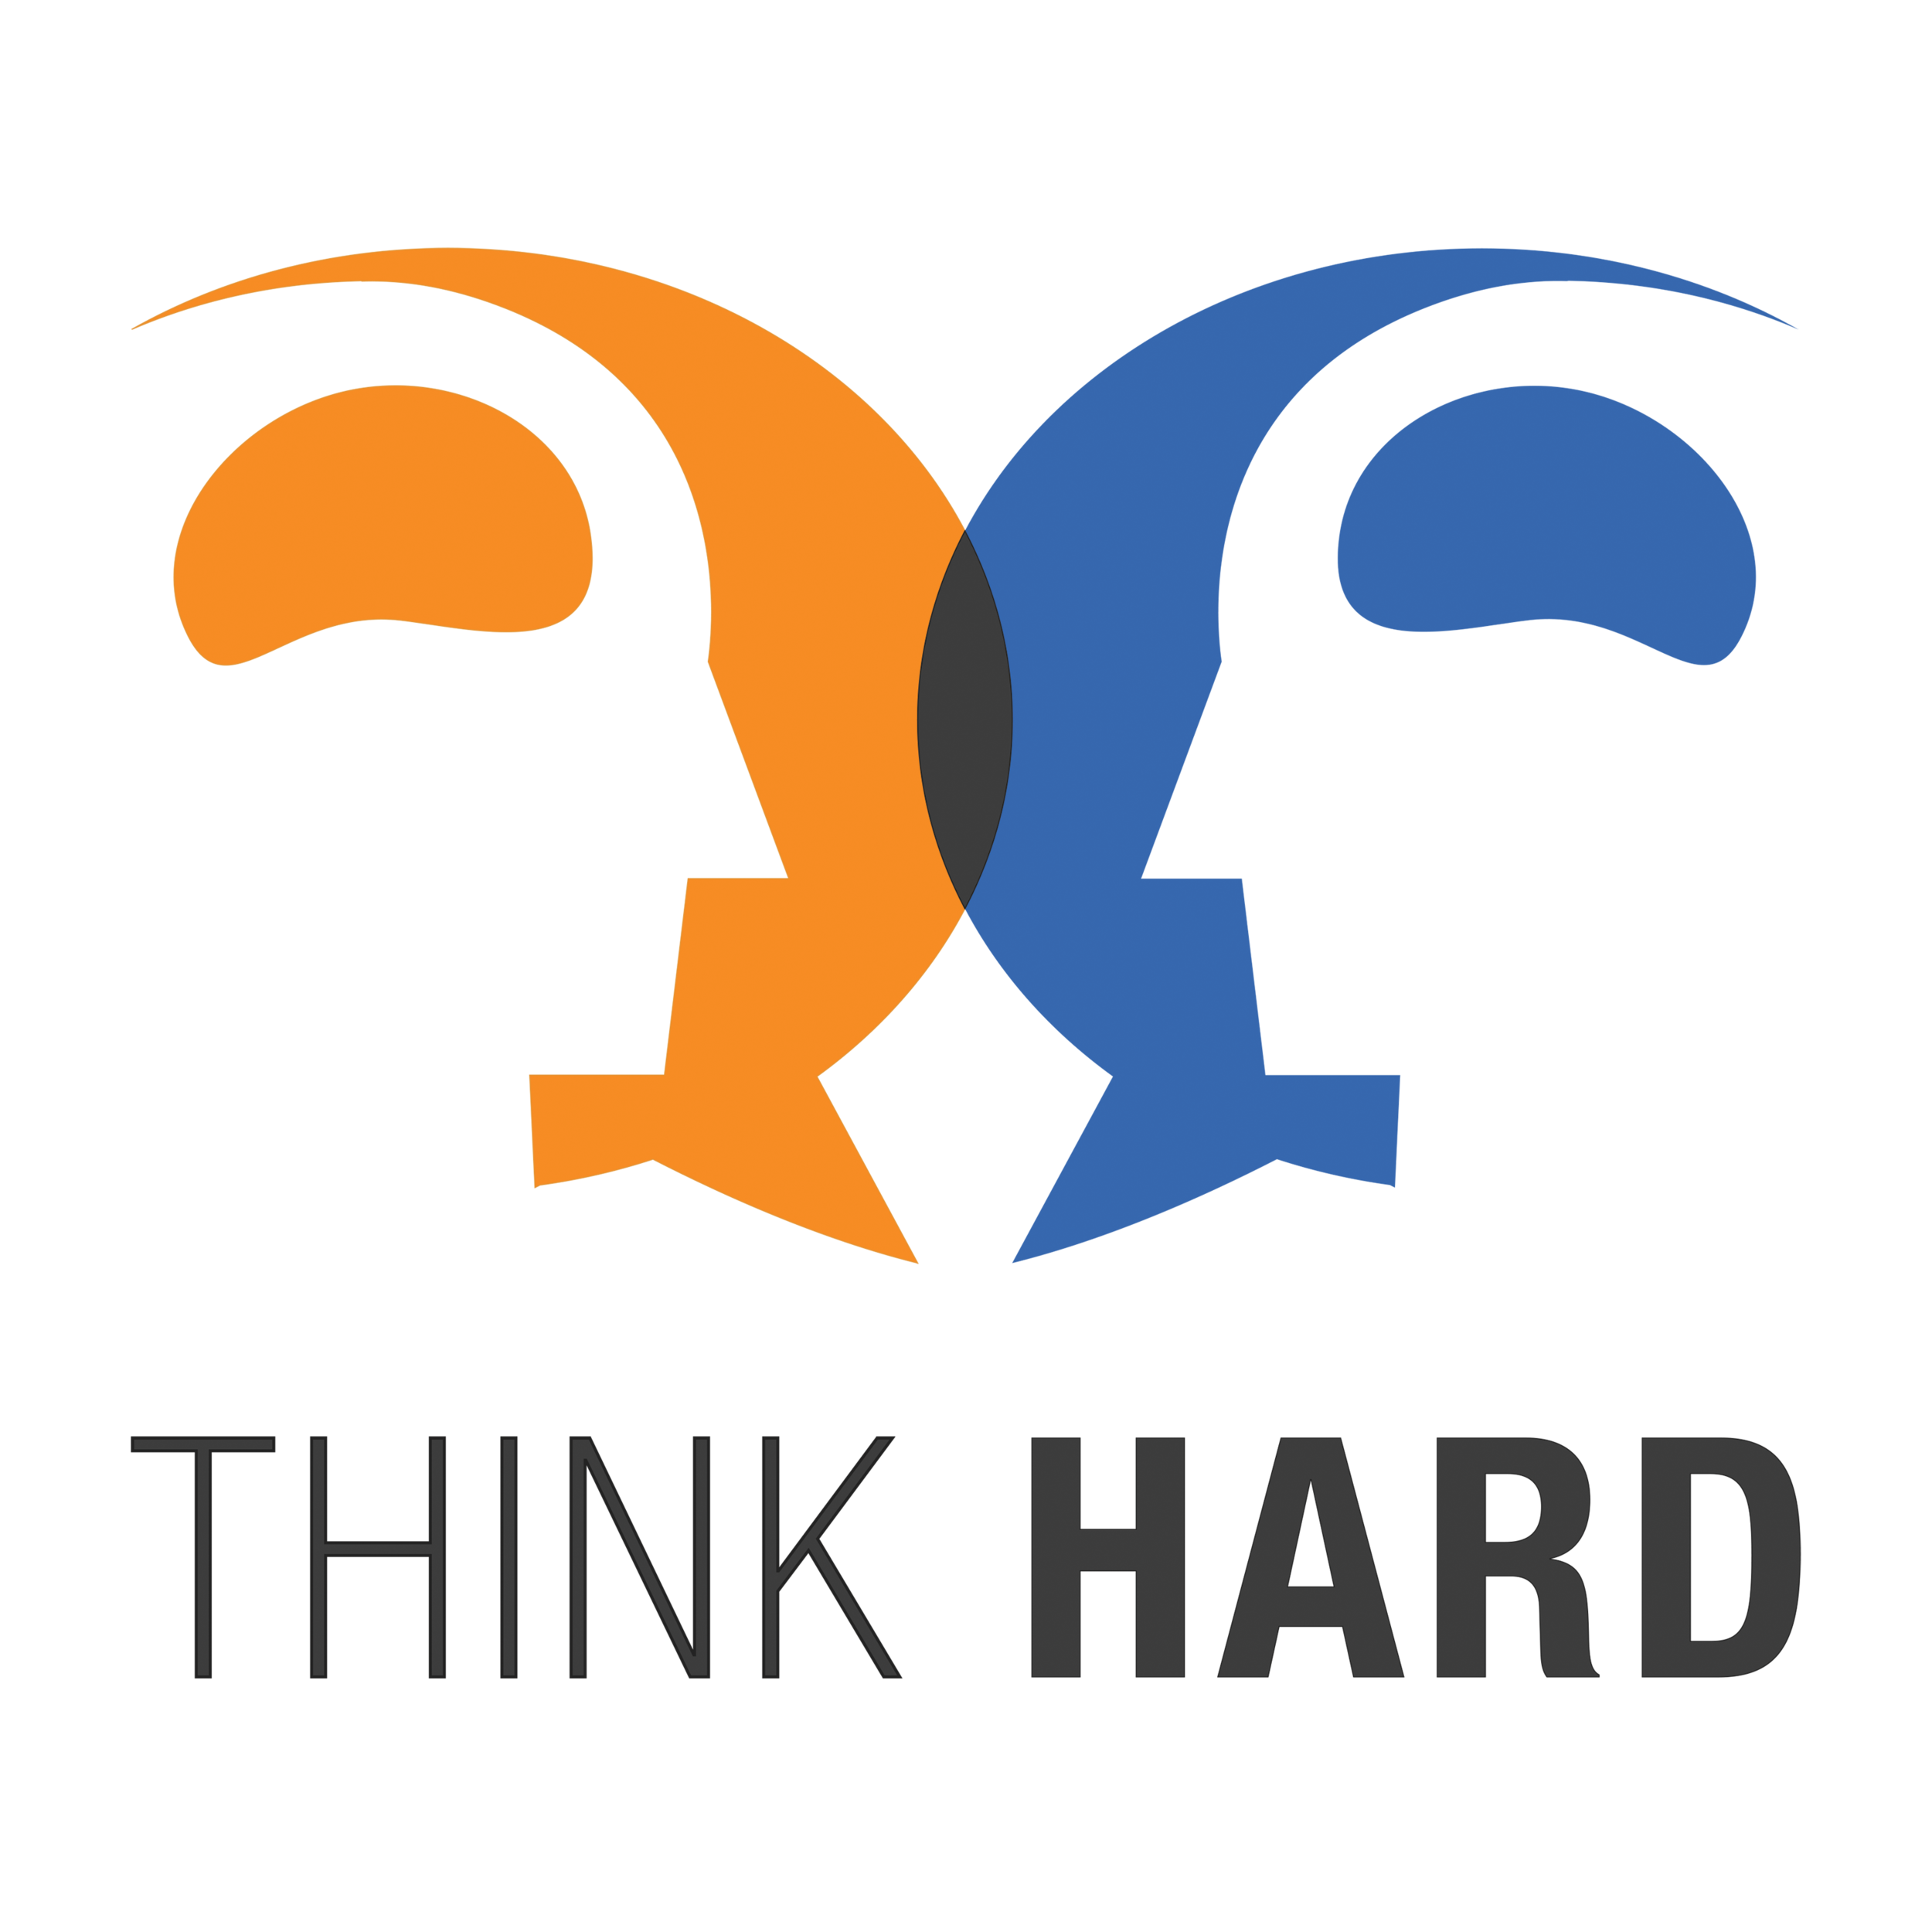 Check out my podcast   Think Hard  , which brings philosophical thinking to everyday life.